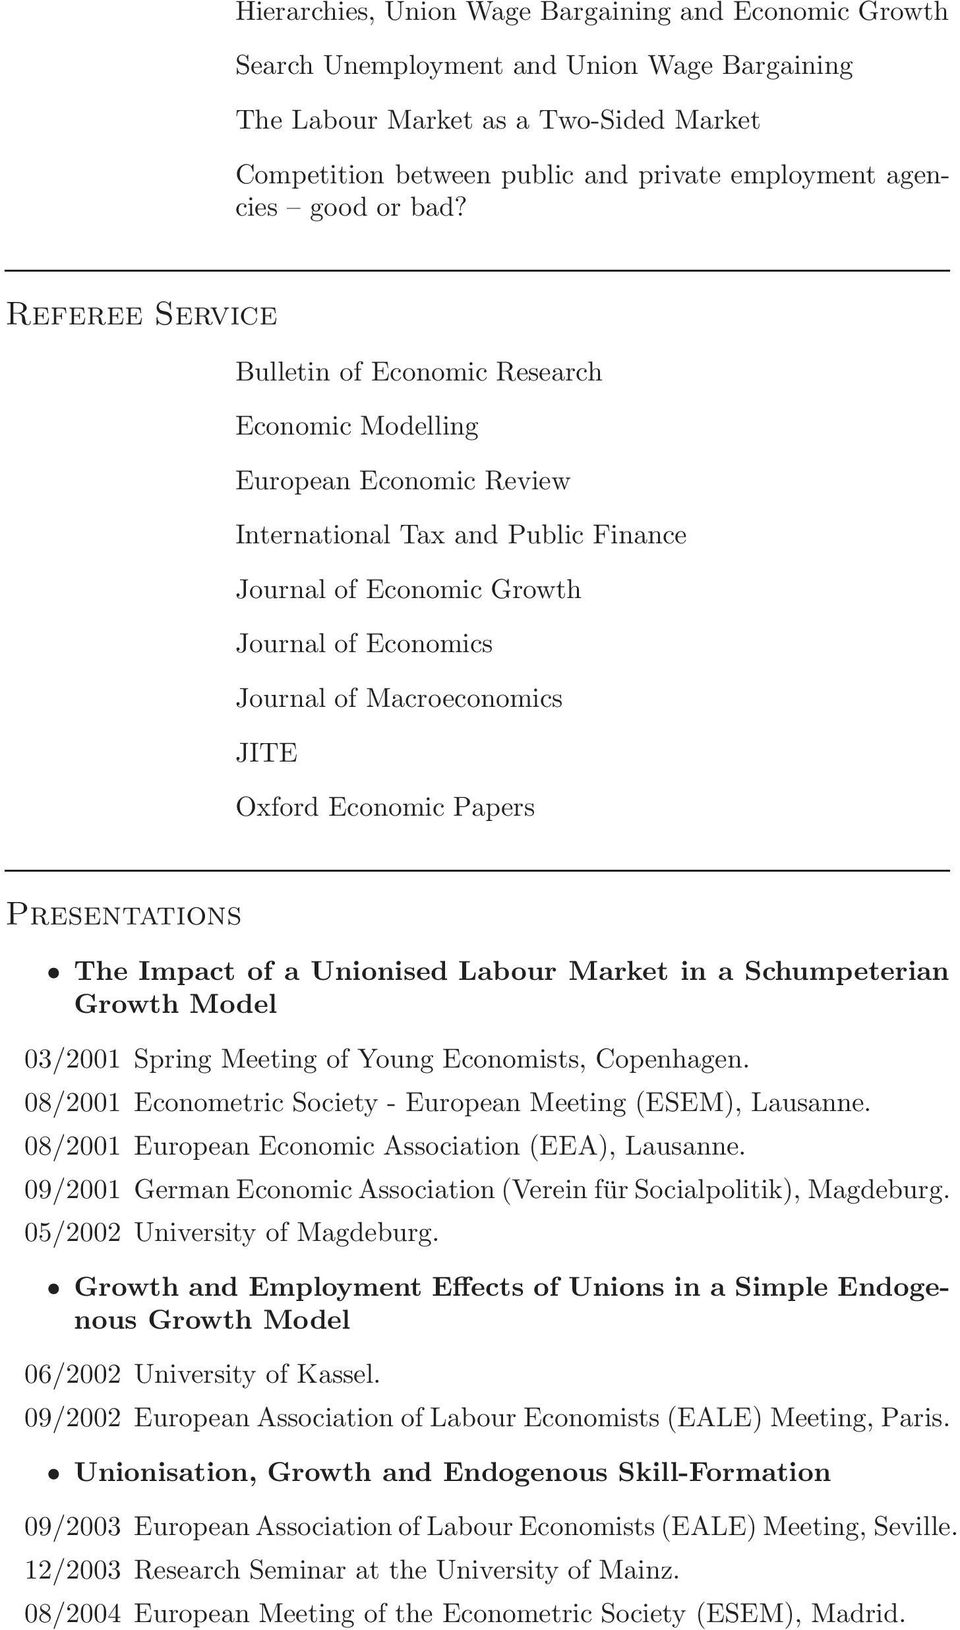 Referee Service Bulletin of Economic Research Economic Modelling European Economic Review International Tax and Public Finance Journal of Economic Growth Journal of Economics Journal of